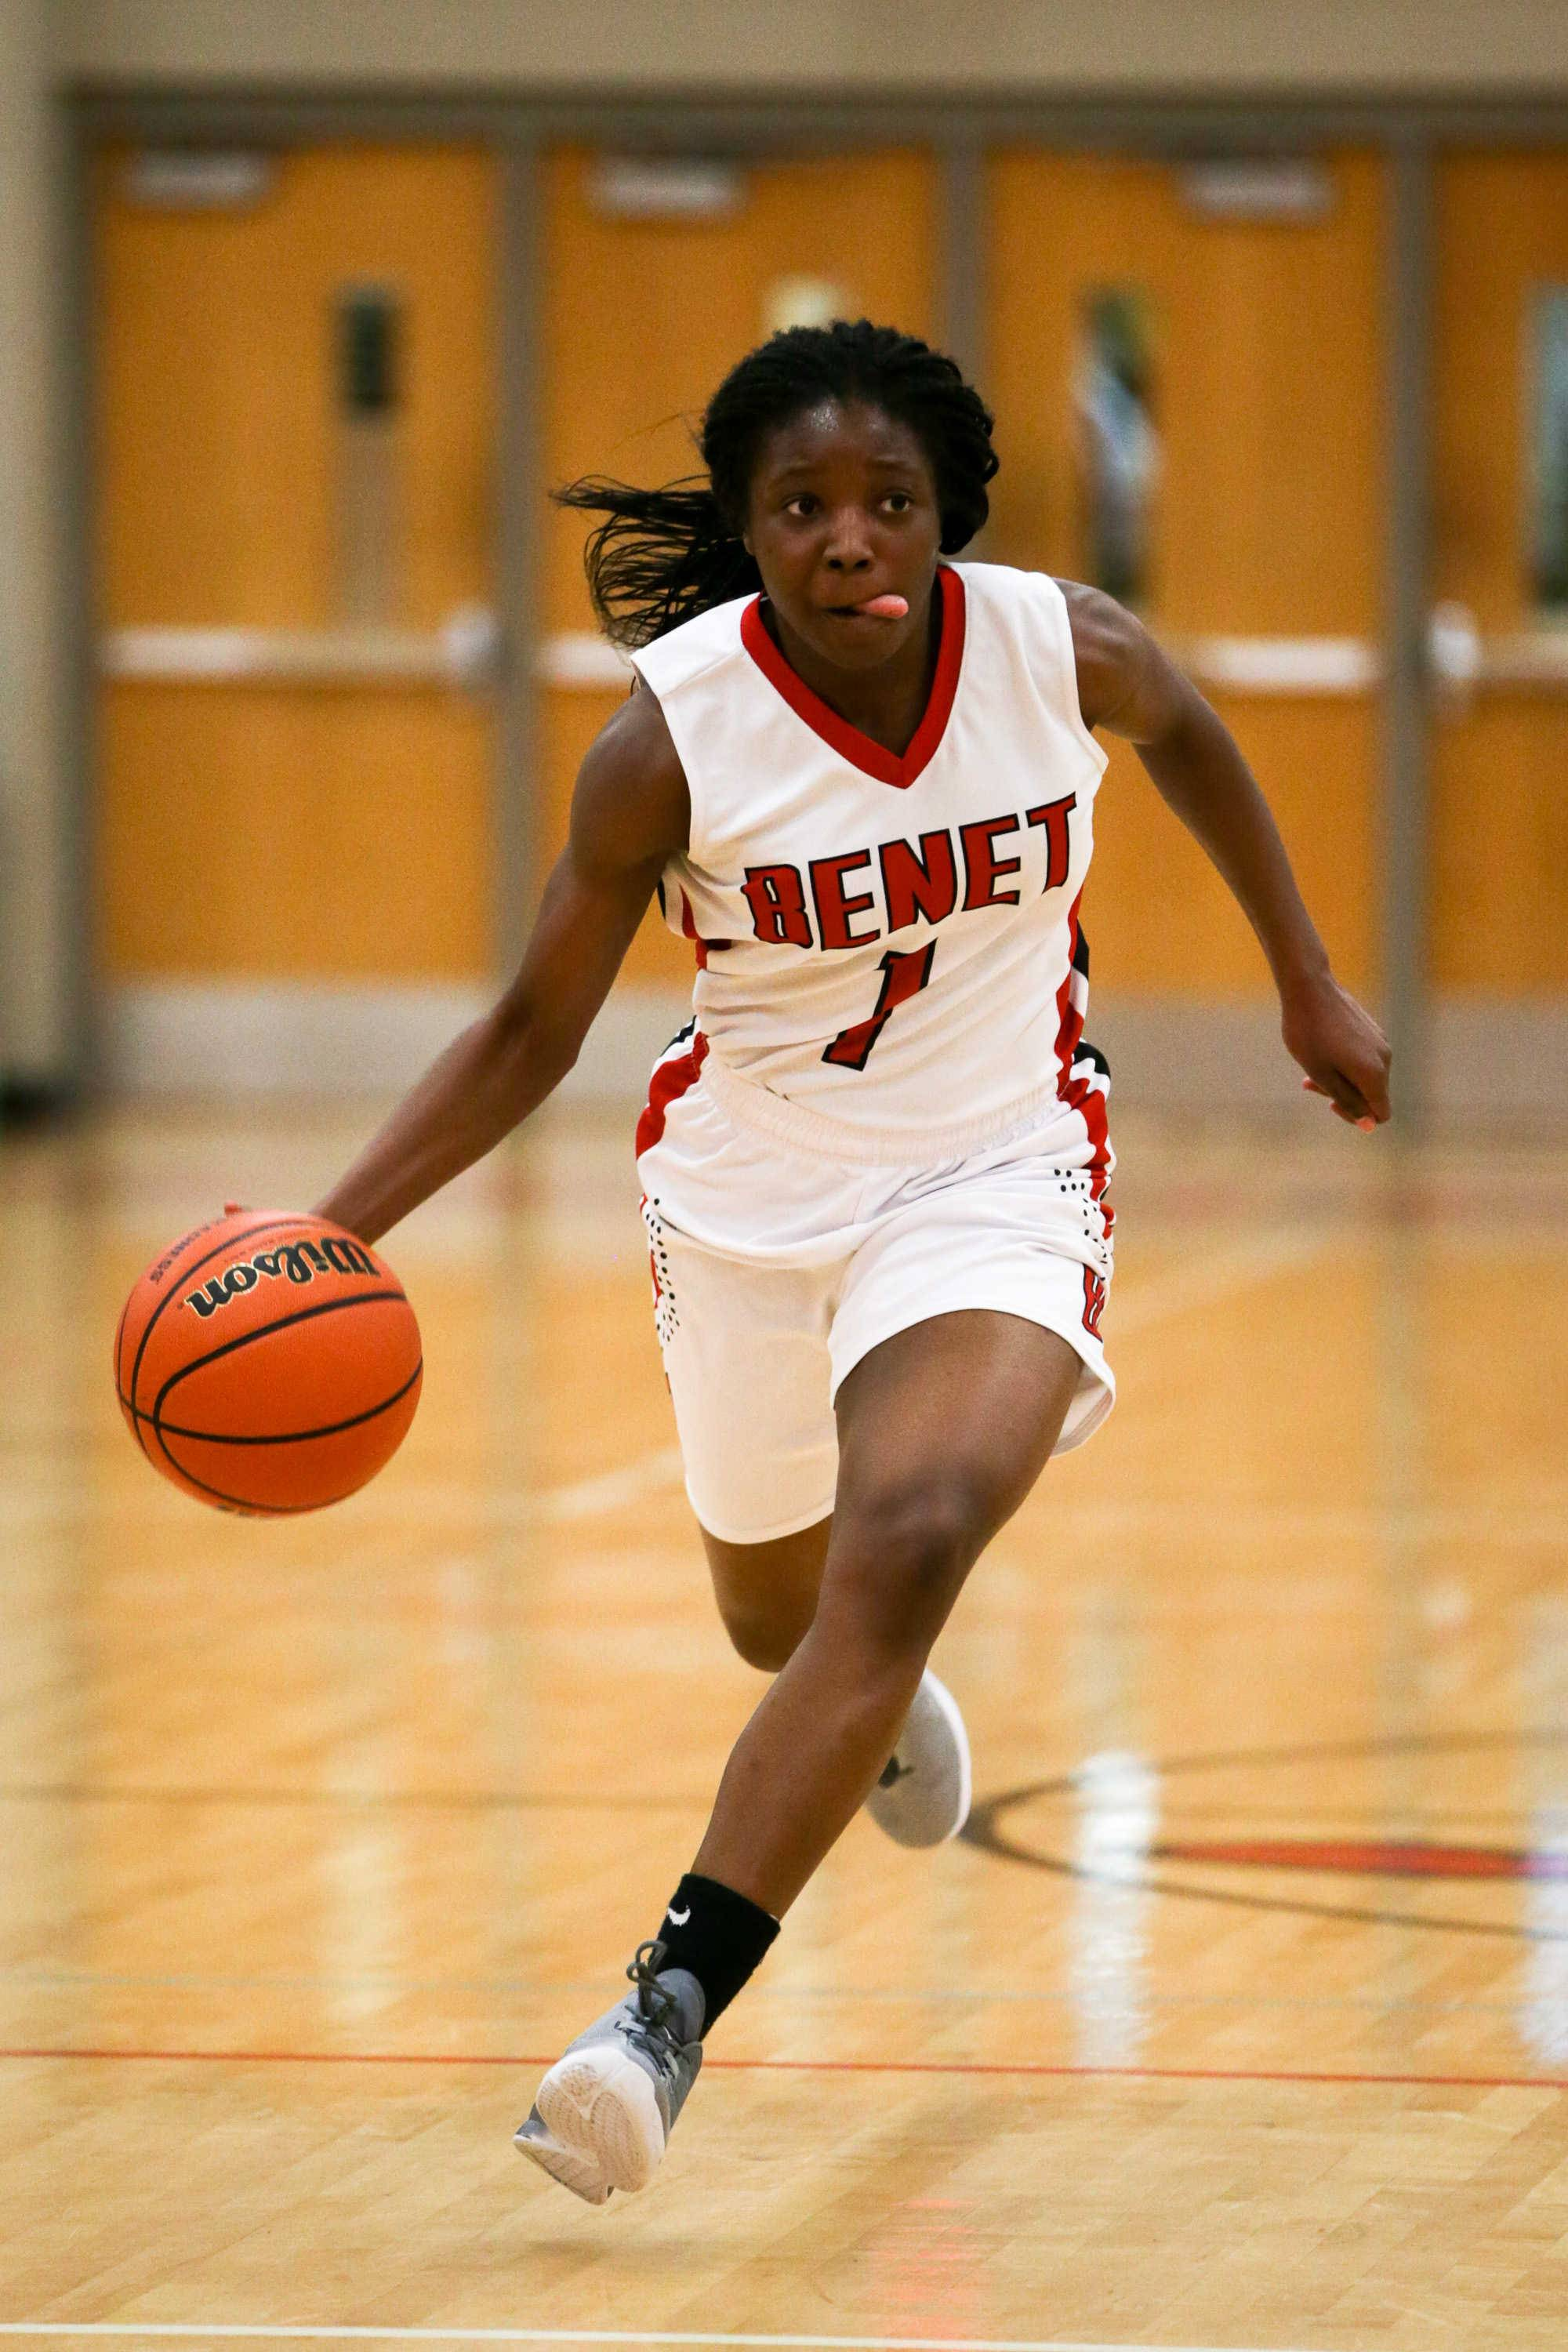 Benet guard Tsimba Malonga (1) brings the ball up the court against Bartlett at Benet Academy in Lisle, IL on Friday, November 18, 2016